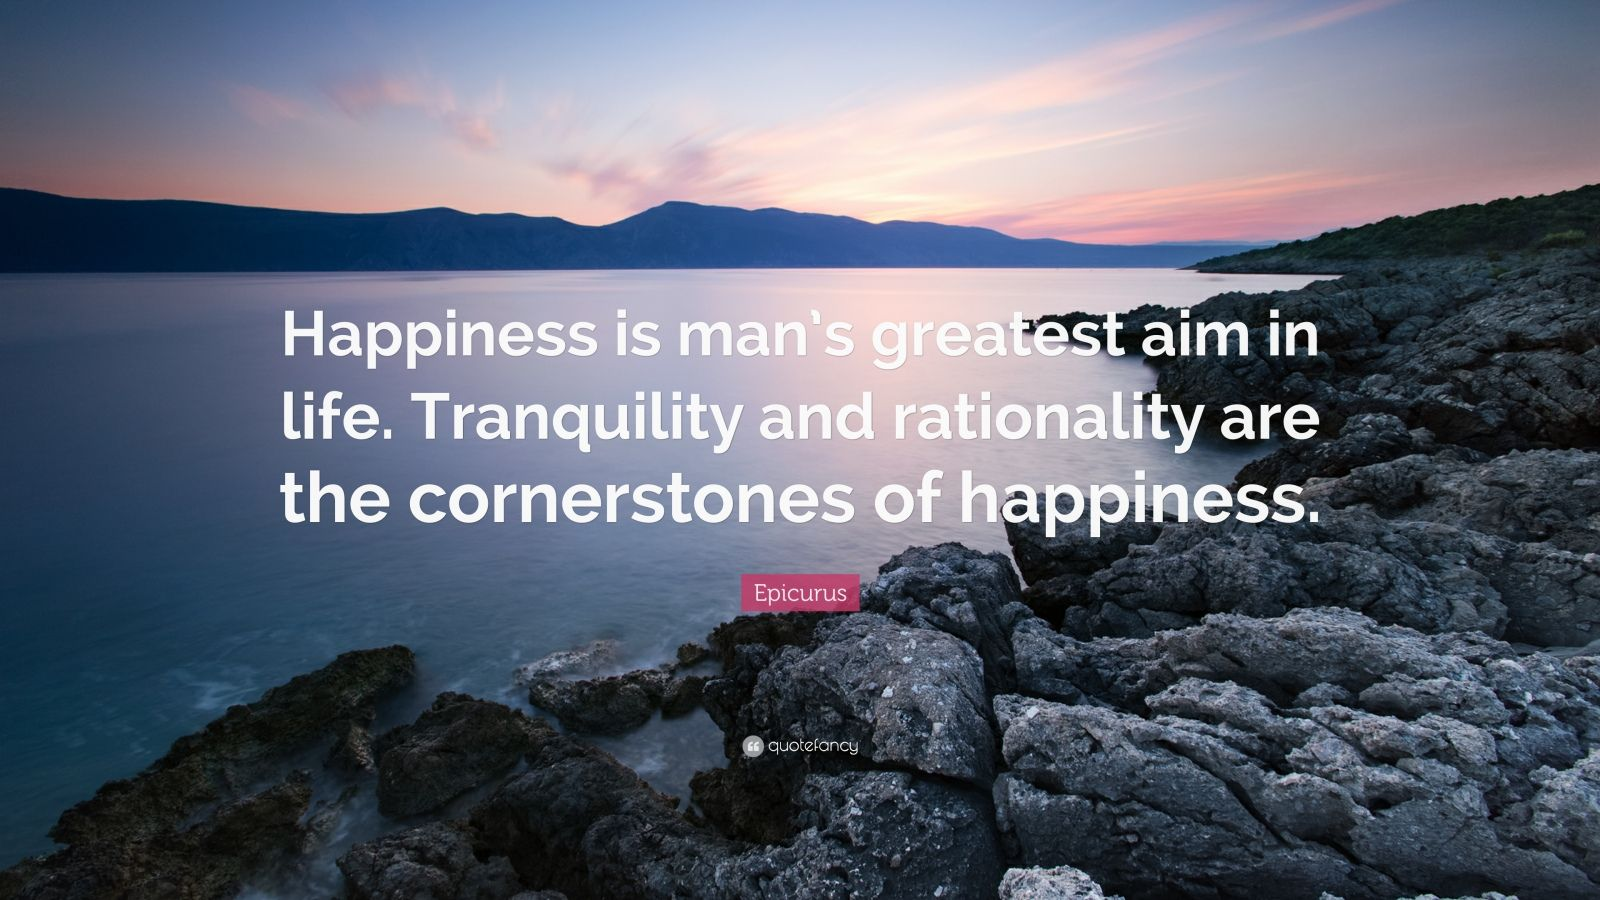 """Epicurus Quote: """"Happiness is man's greatest aim in life. Tranquility and rationality are the cornerstones of happiness."""""""